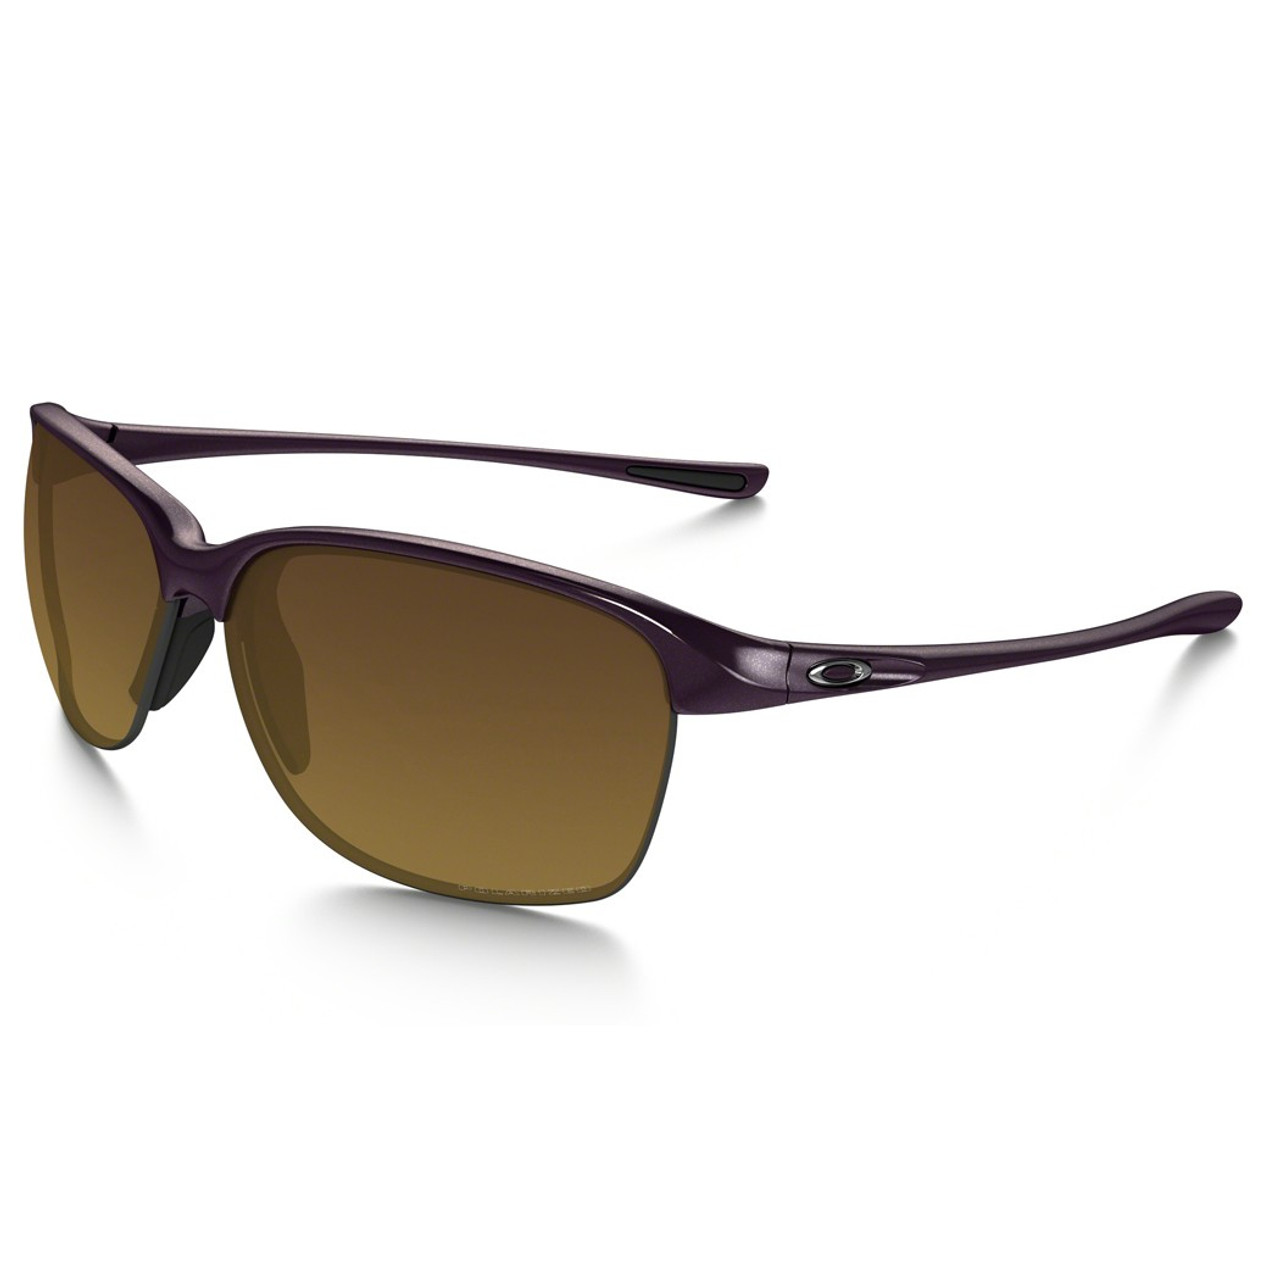 Oakley Womens Sunglasses - Unstoppable - Raspberry Spritzer Brn Polar -  Surf and Dirt 8f474a8108